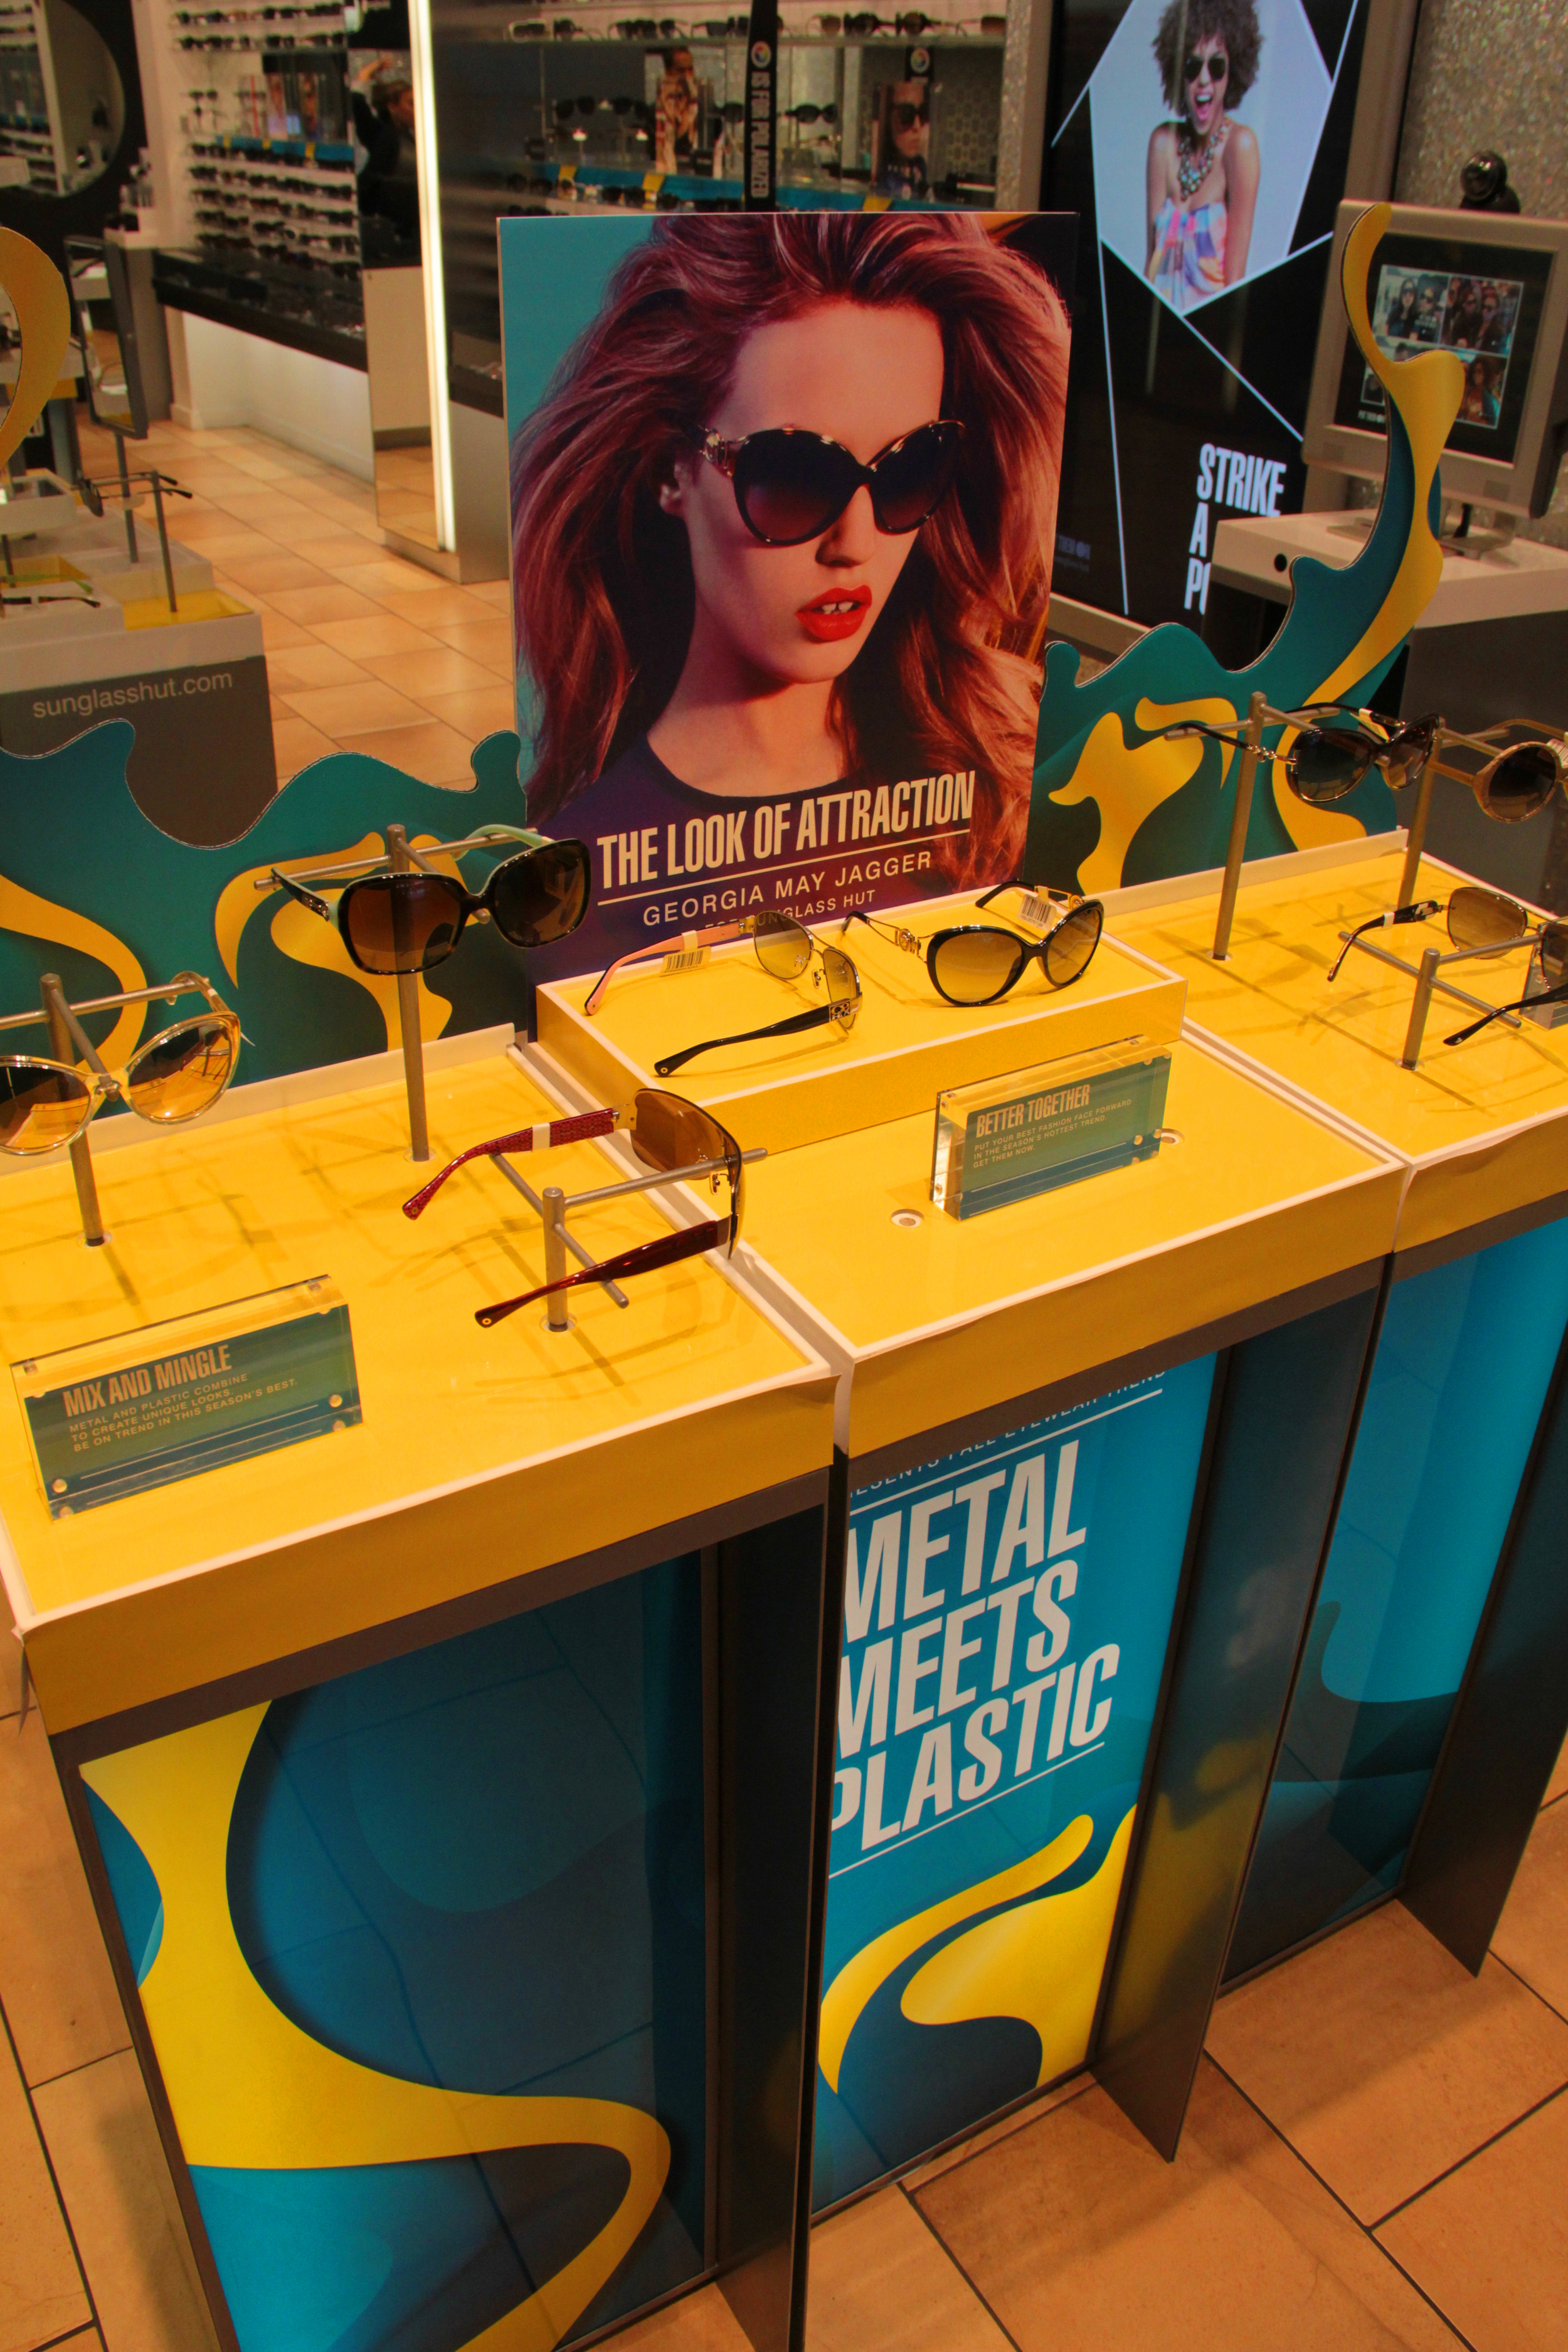 Store displays produced for Sunglass Hut.